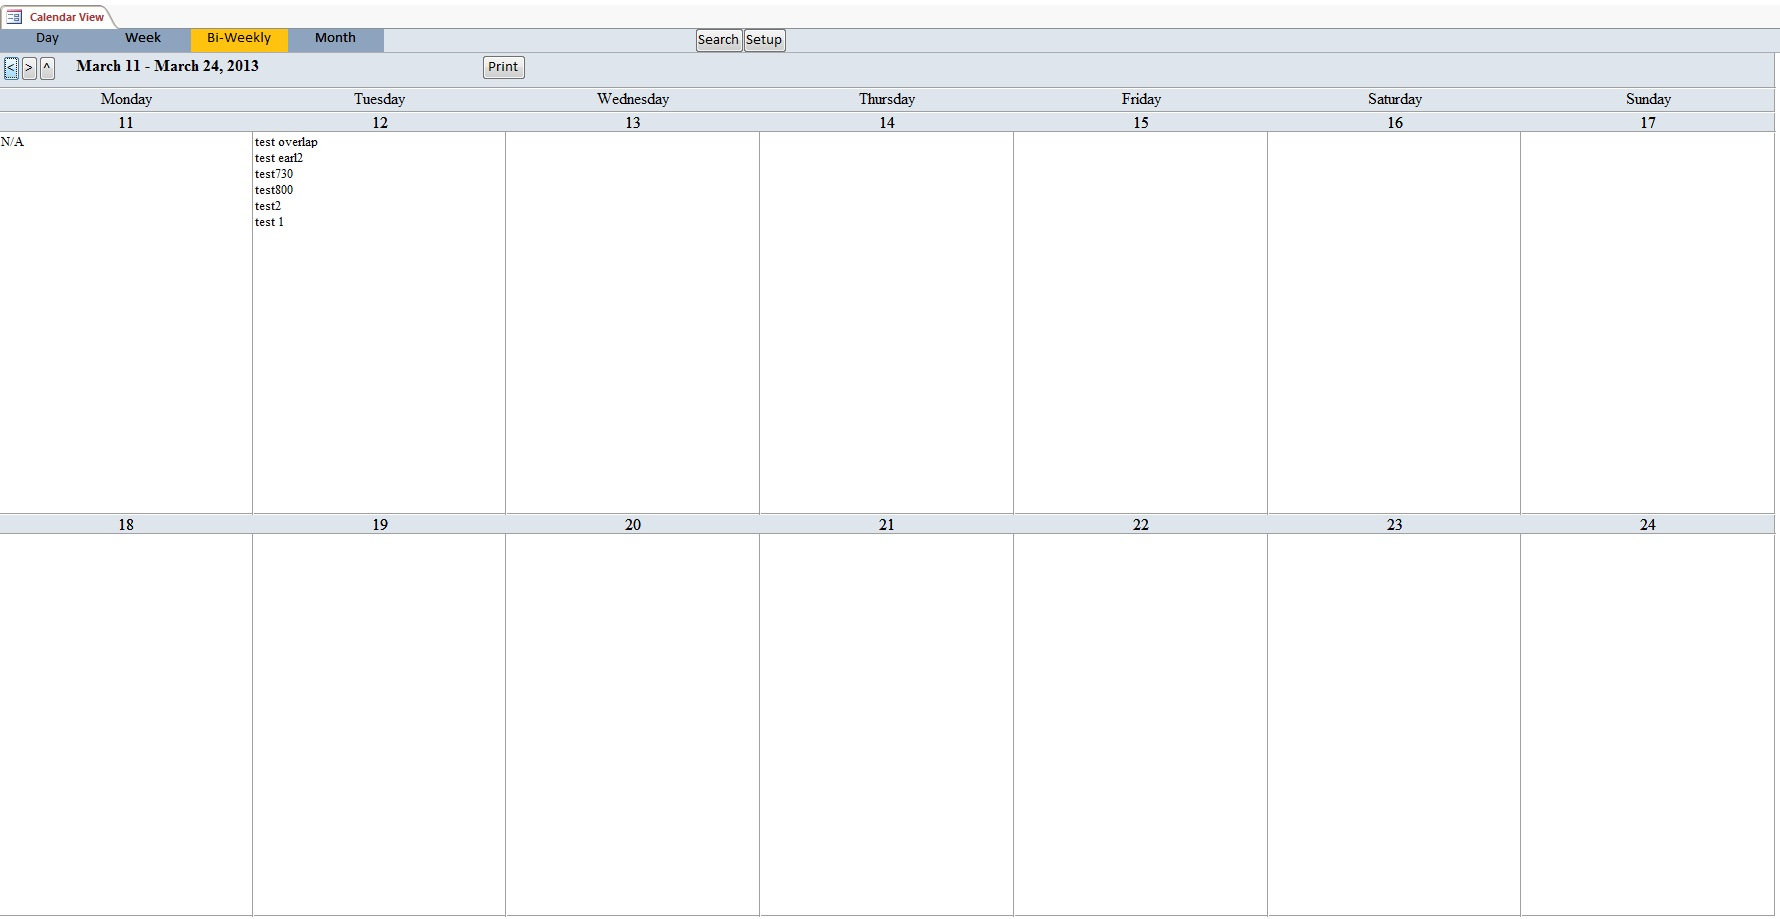 Calendar Scheduling Database Template | Calendar Database with Outlook Calendar Template 5 Week